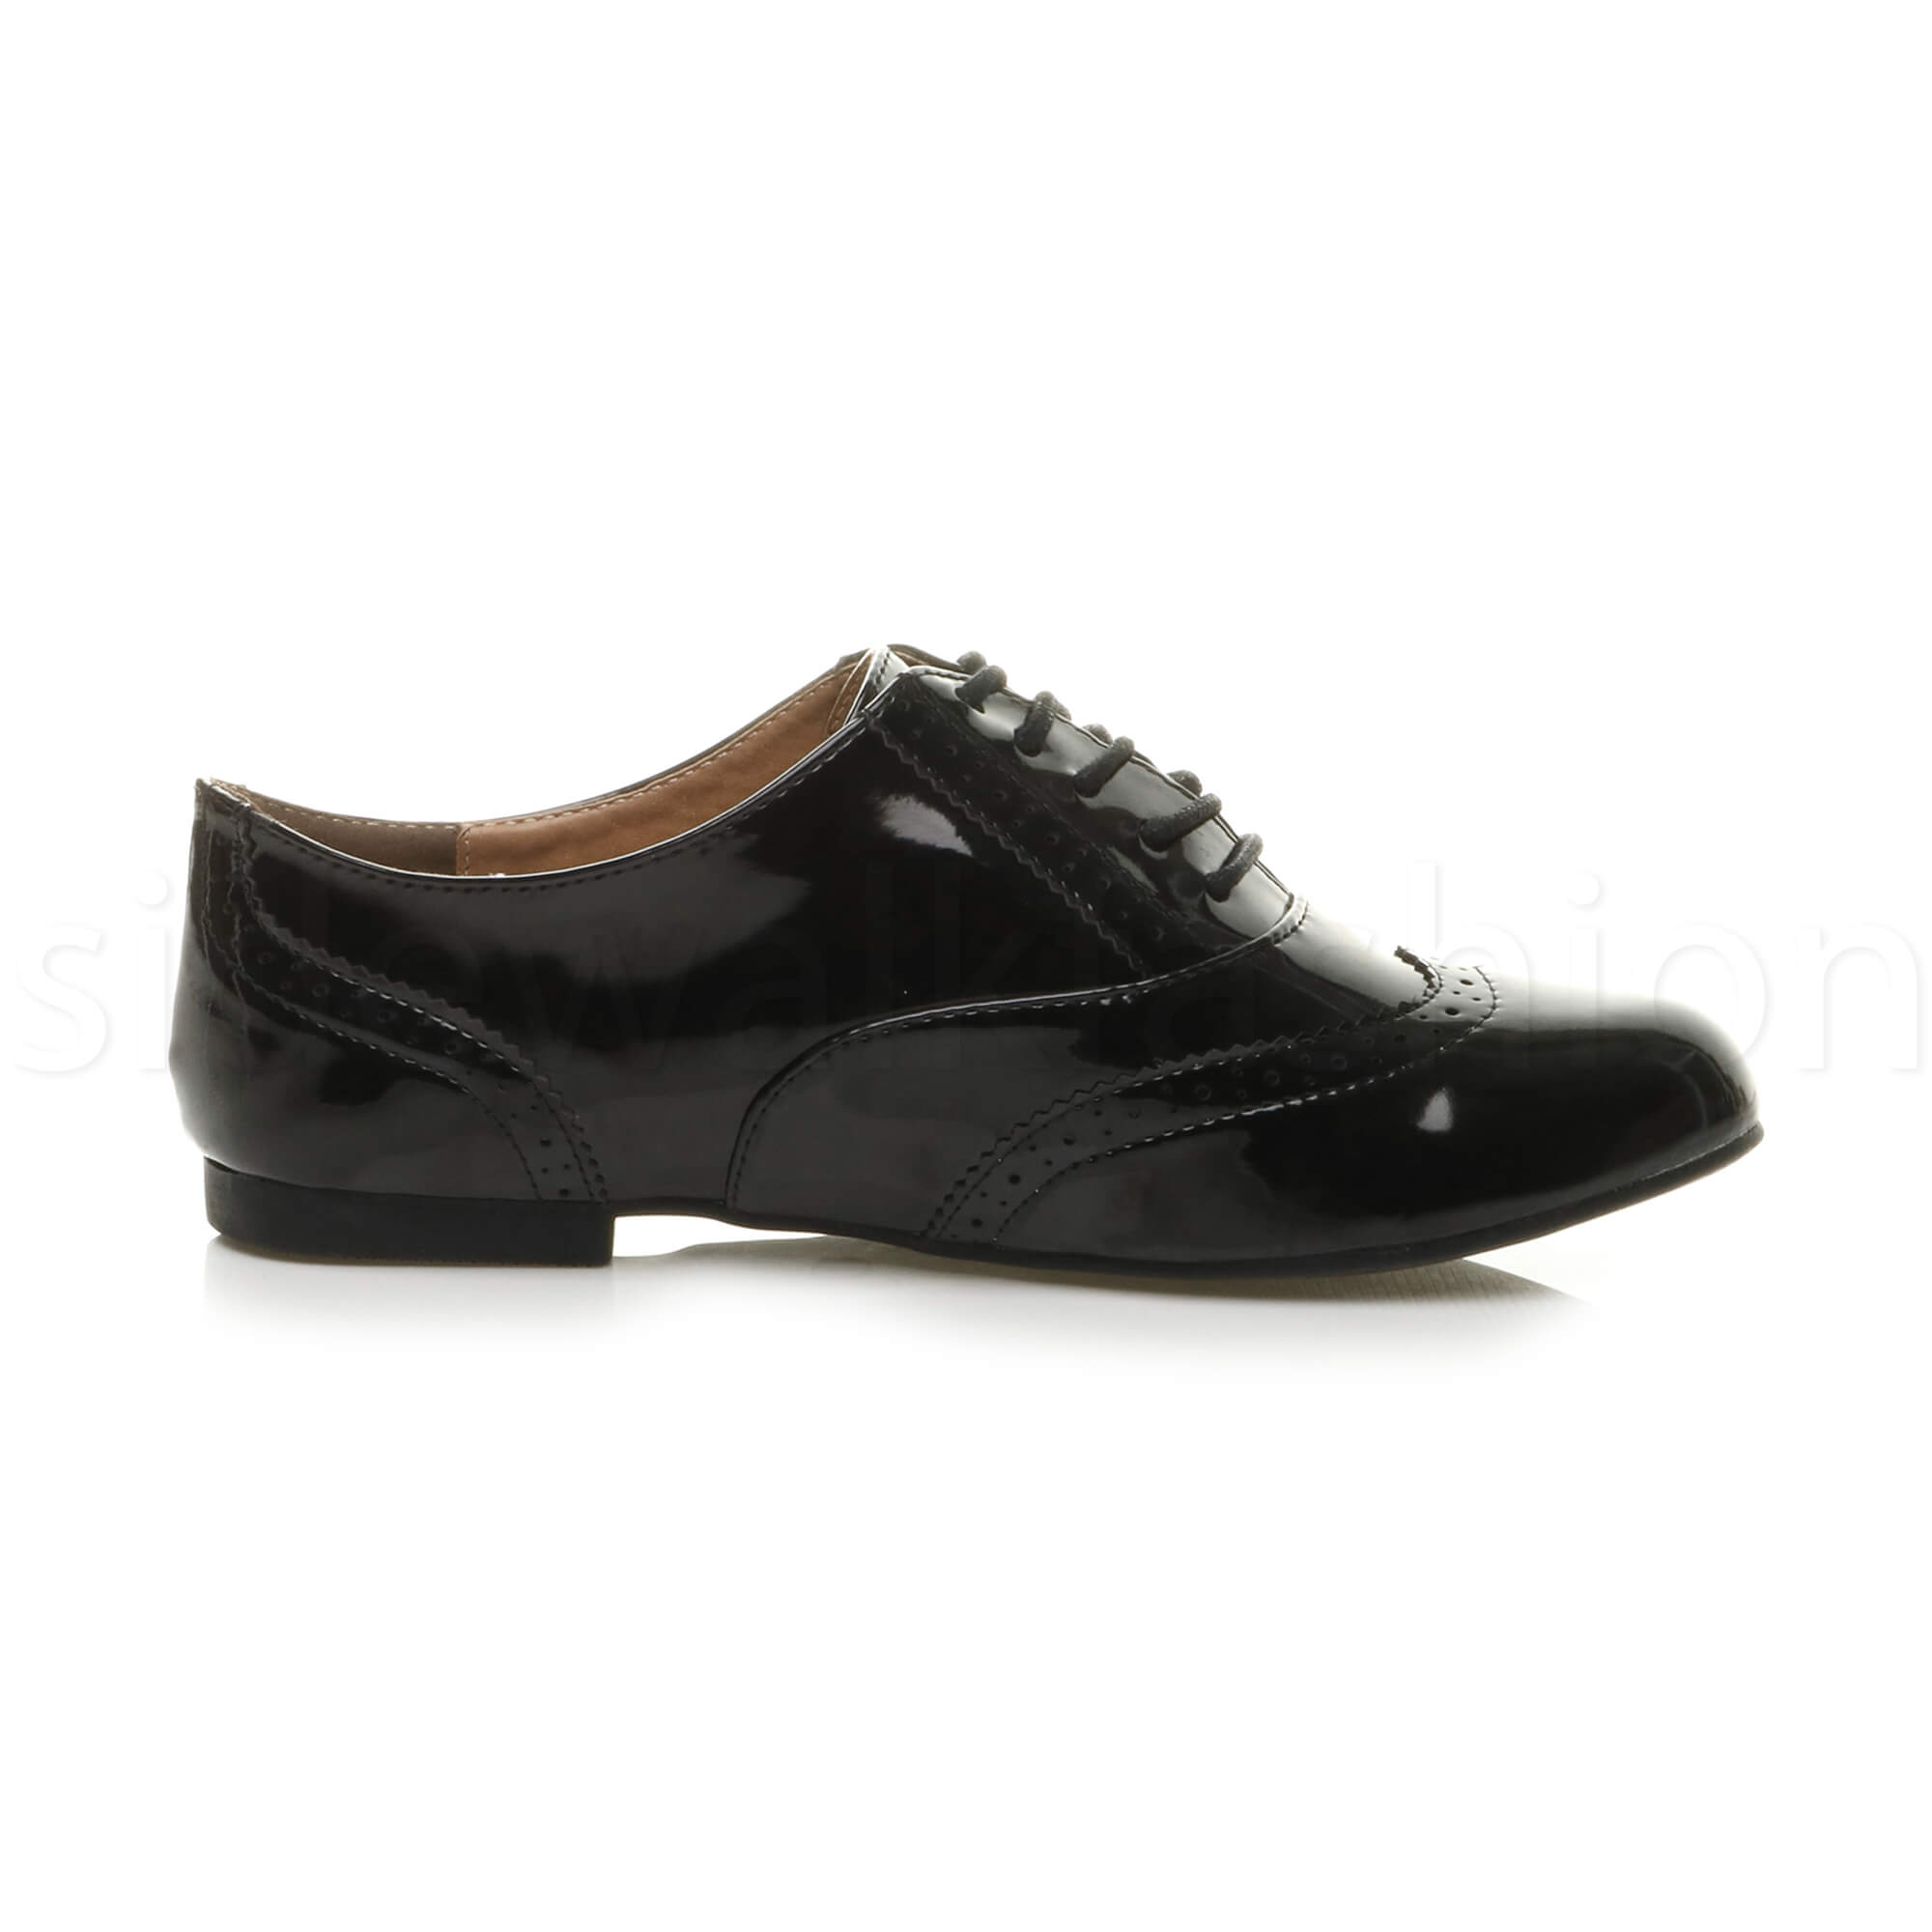 Womens-ladies-casual-brogue-lace-up-vintage-flat-shoes-size